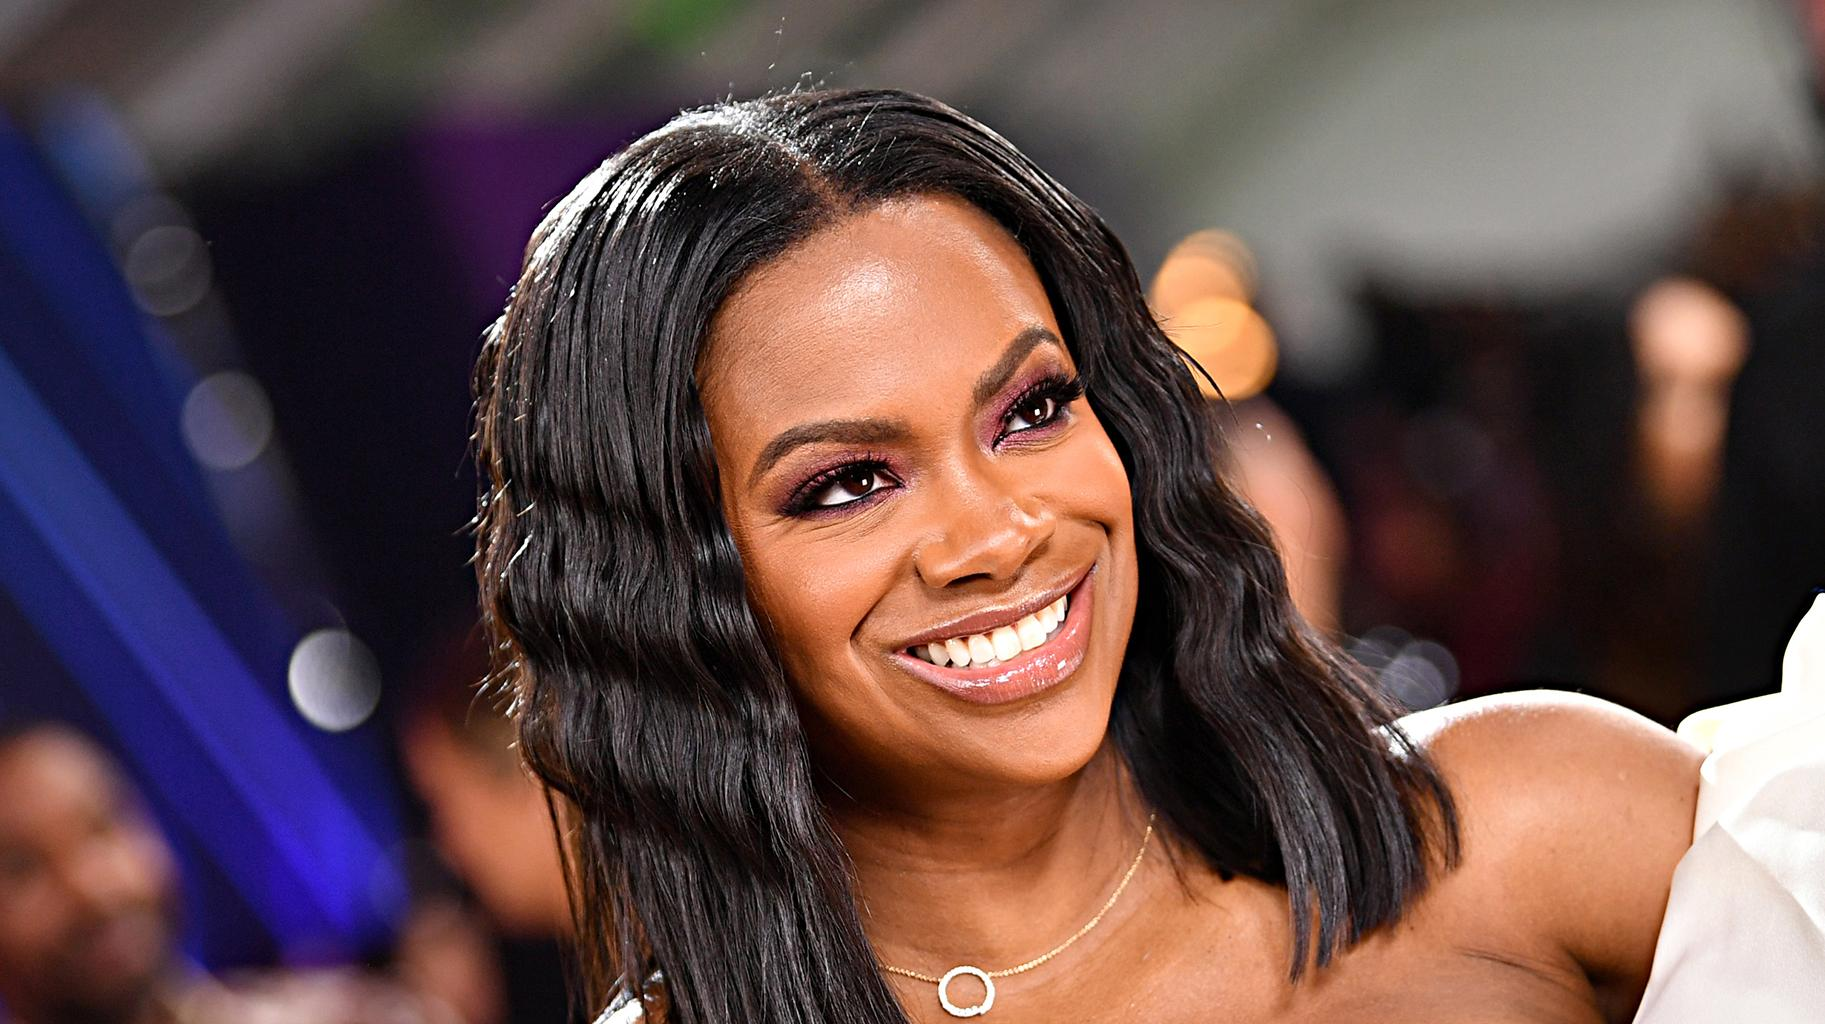 Kandi Burruss Talks Surrogacy And RHOA Feuds In The Latest Video